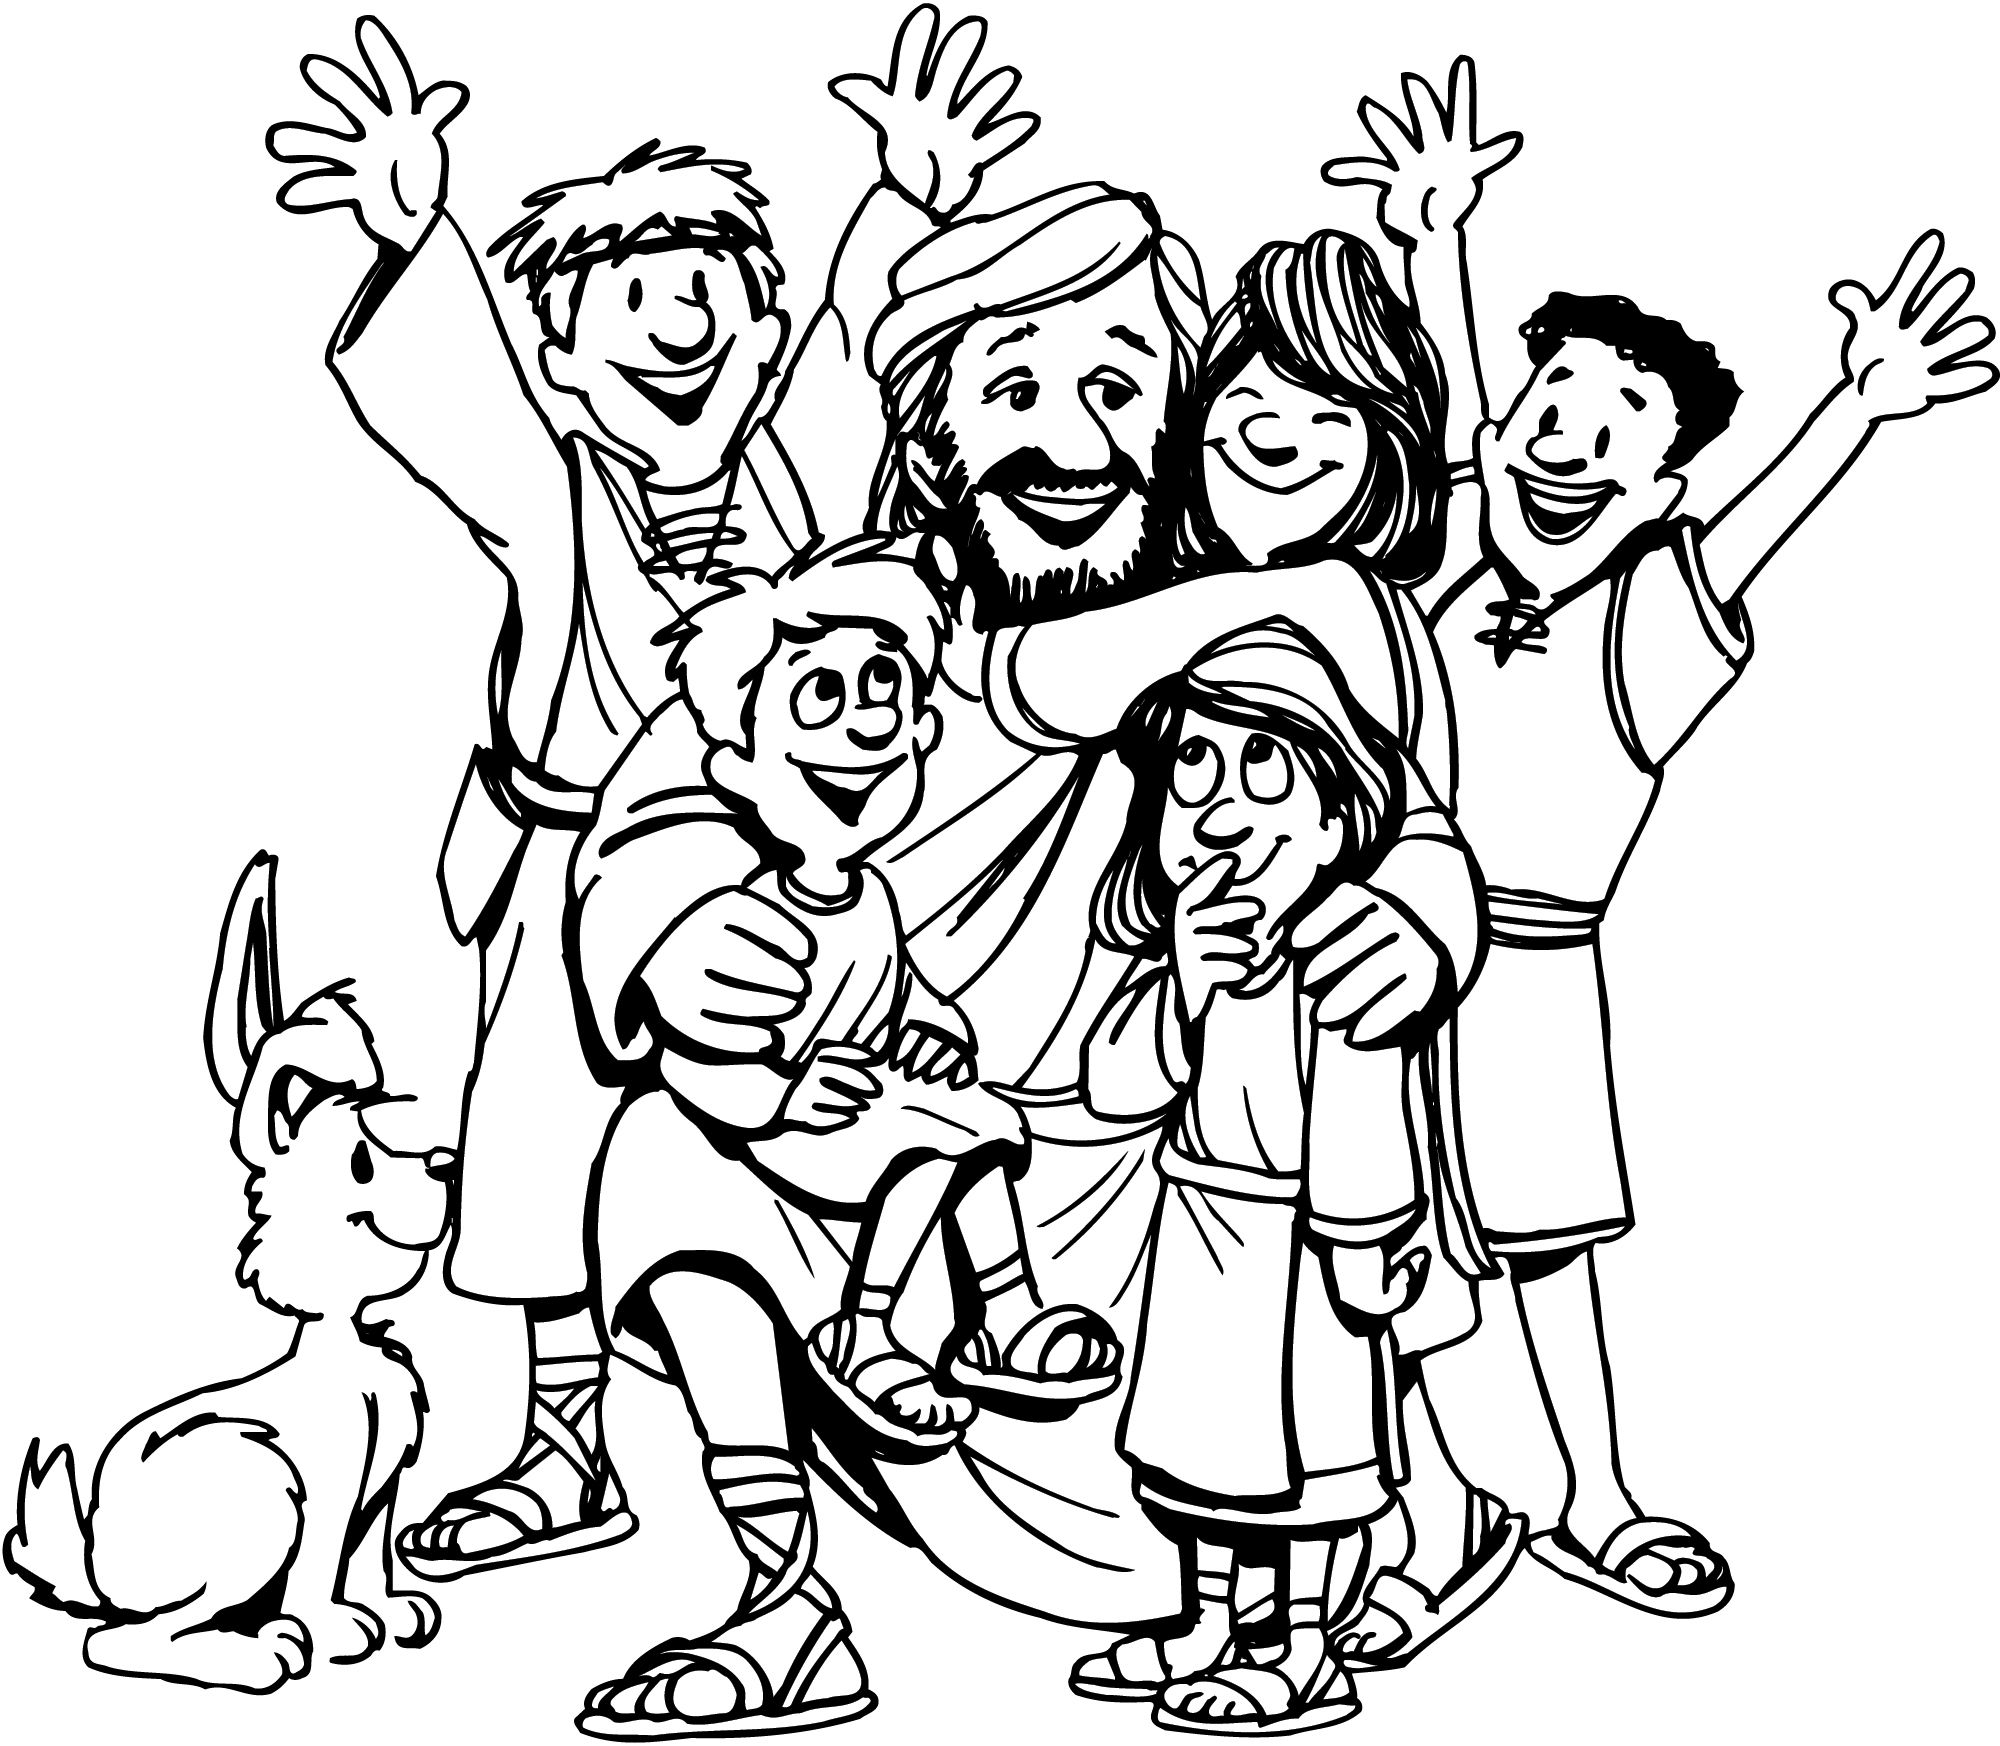 jesus loves the little children coloring page | jesus loves ... - Jesus Children Coloring Page